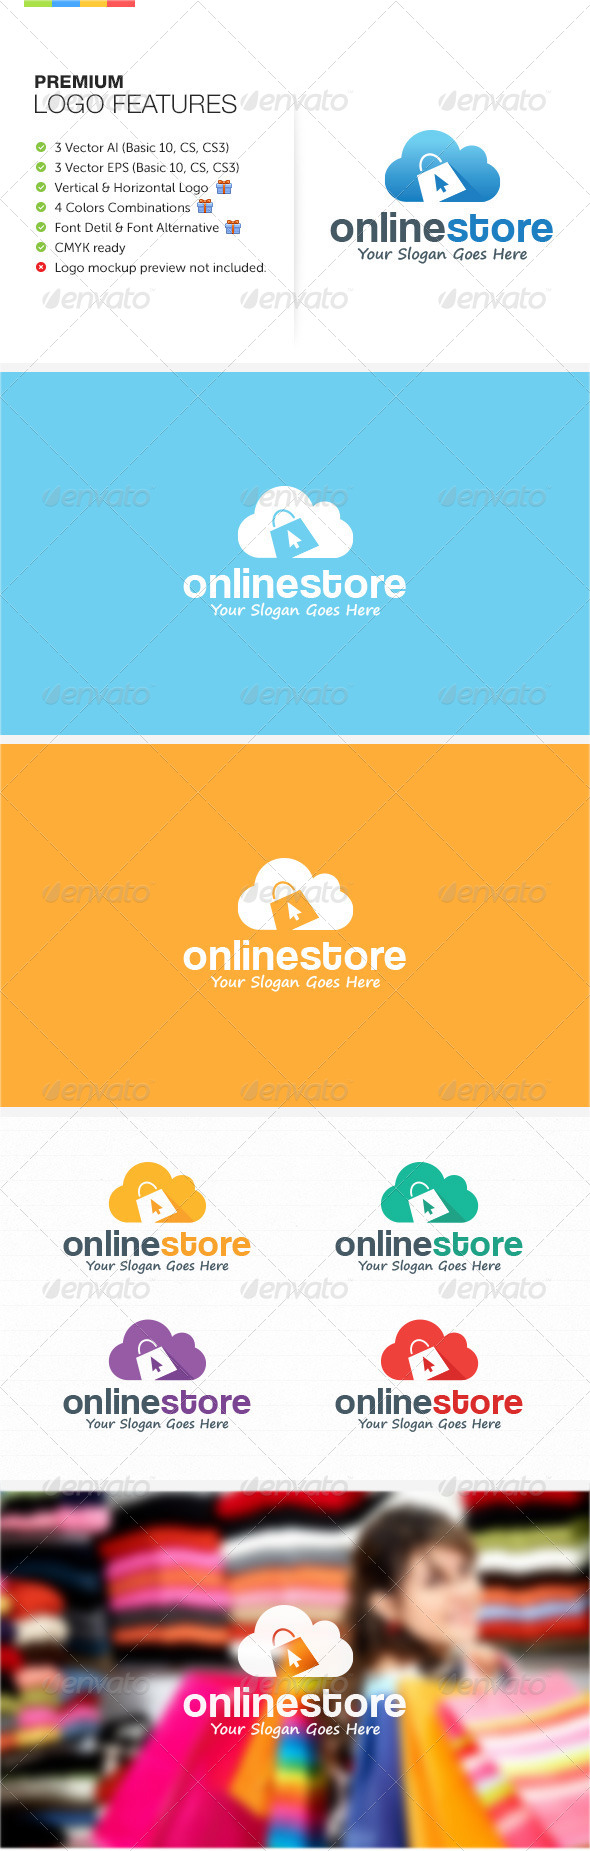 GraphicRiver Online Store Logo 8546566